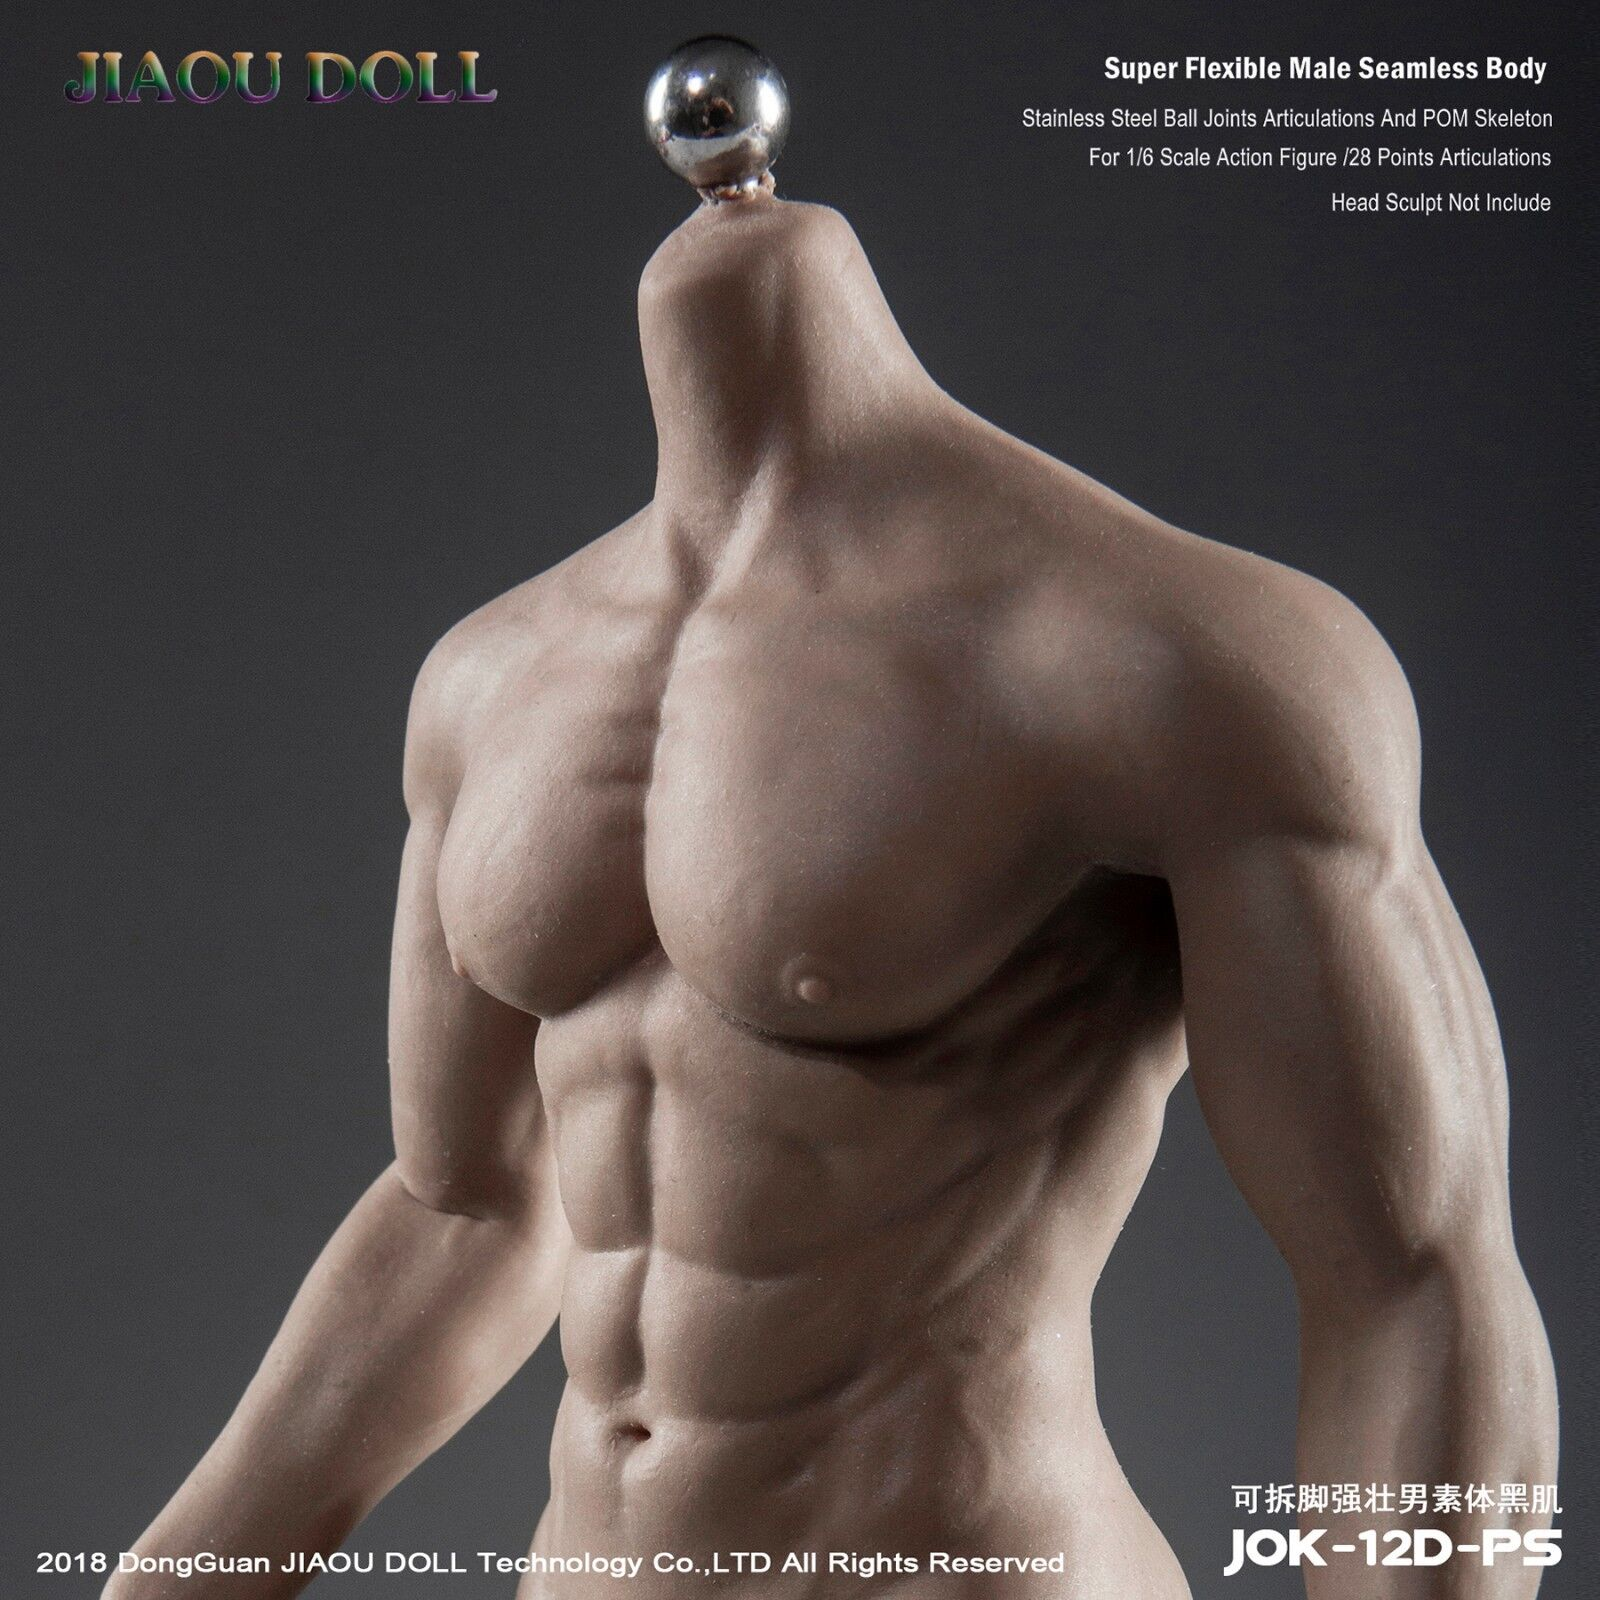 JIAOU DOLL JOK-12D-PS 1 1 1 6 Detachable Foot Strong Male Body Figure Toys 417580